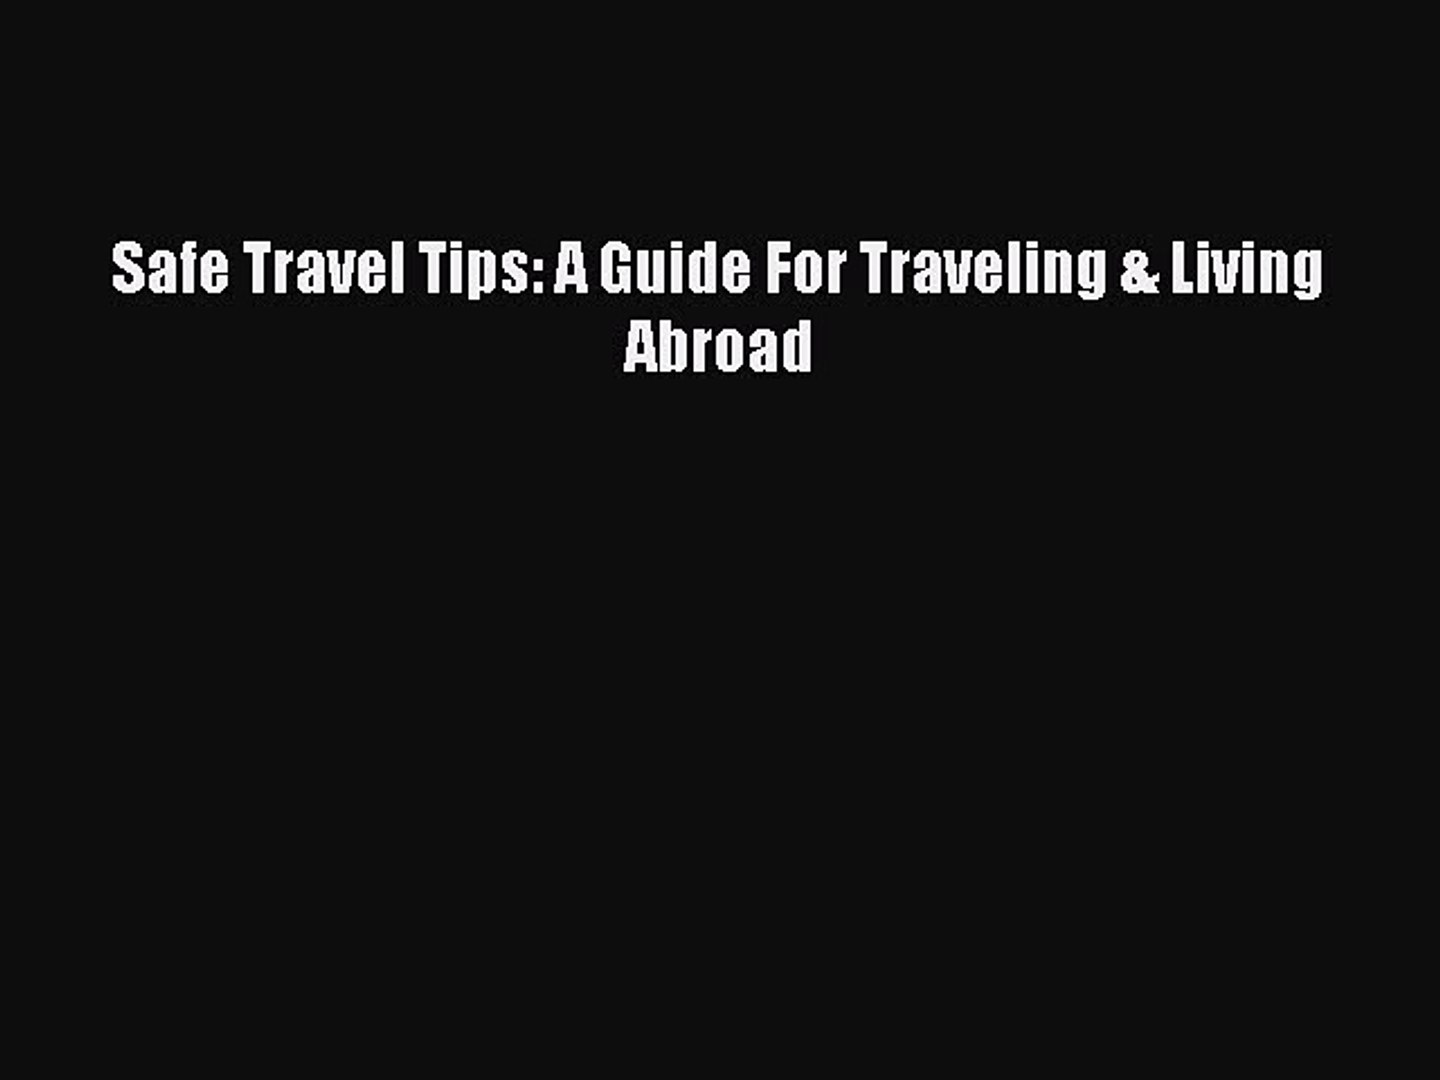 [Download] Safe Travel Tips: A Guide For Traveling & Living Abroad [PDF] Online